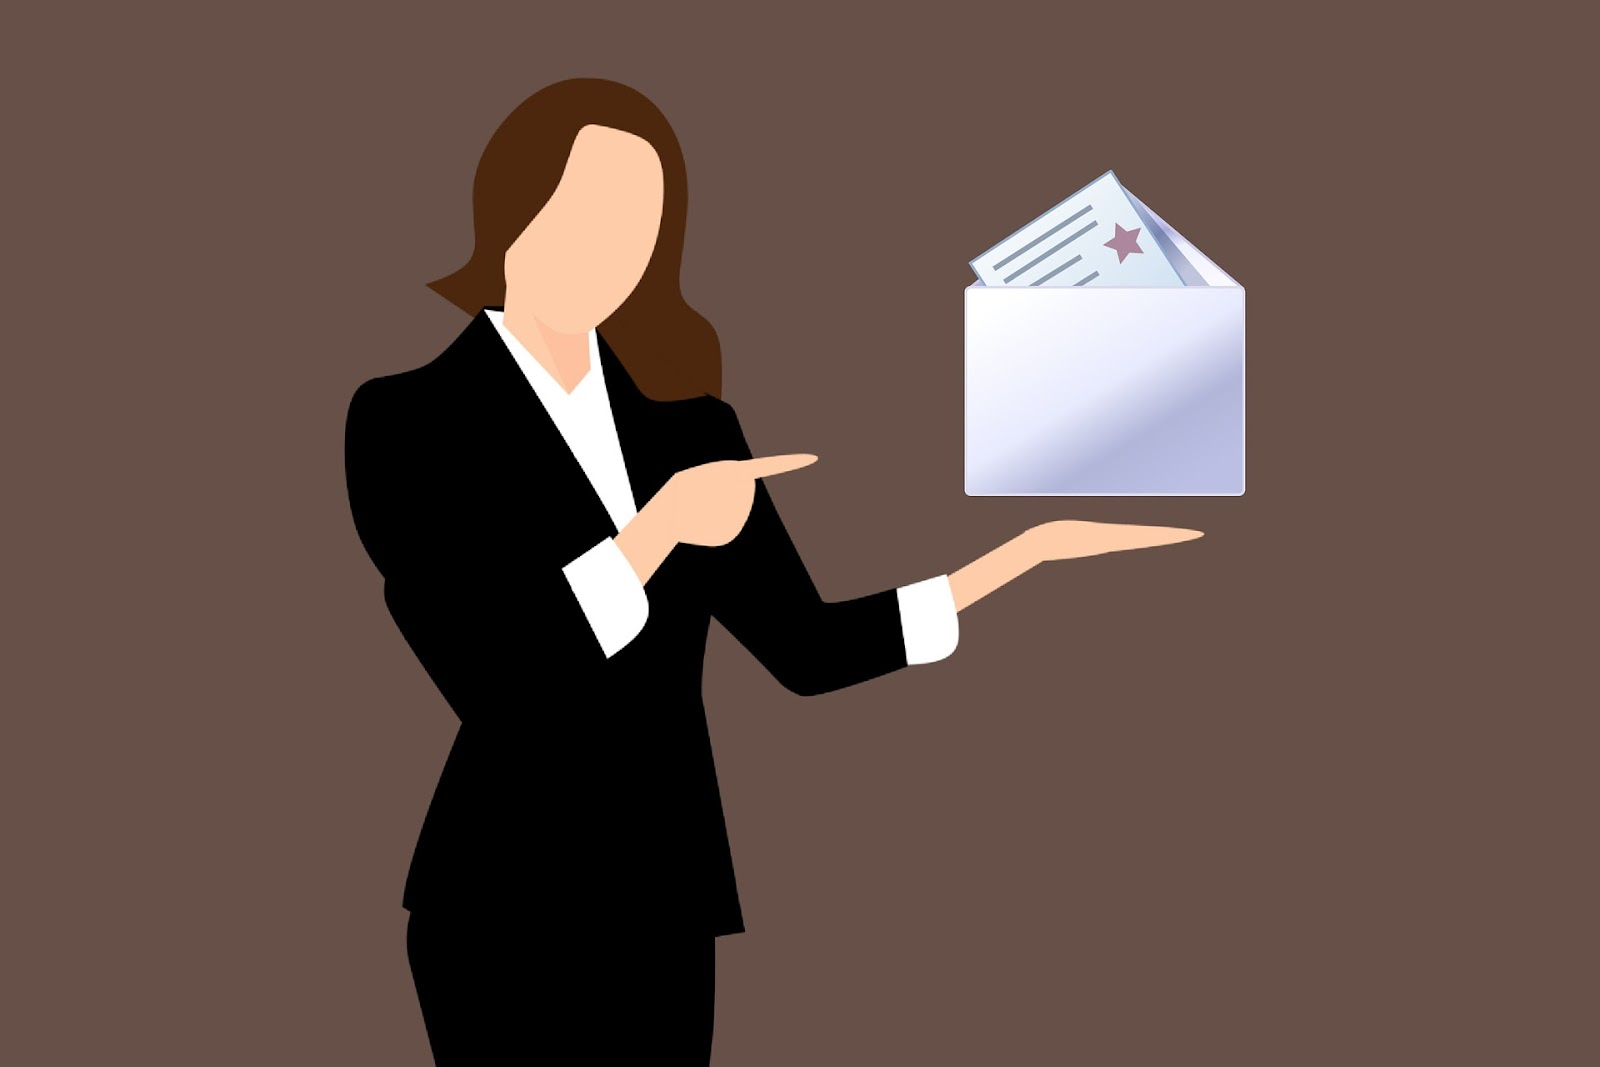 3 Email Marketing Steps to Legally Contact Your Leads